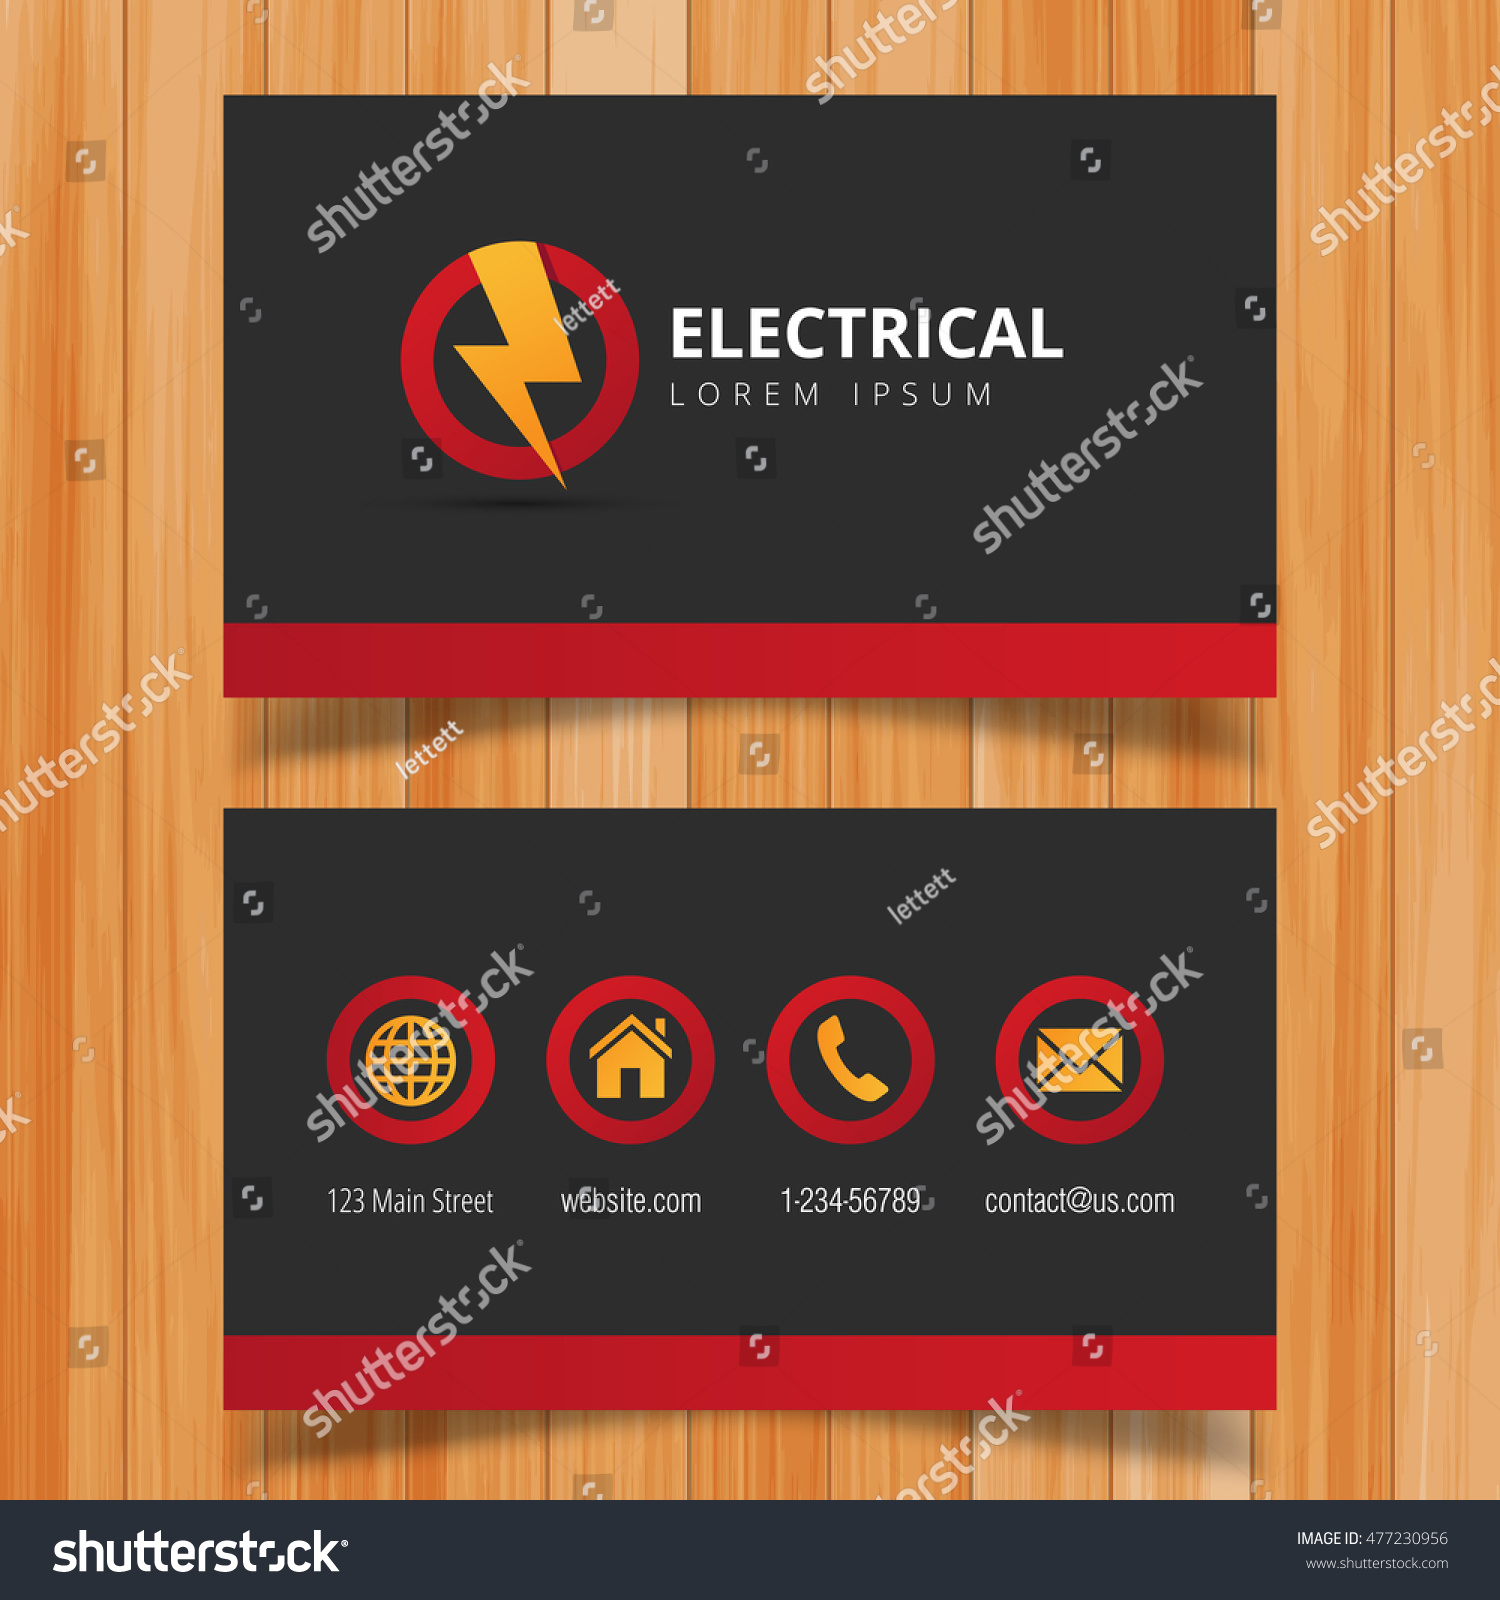 electric logo business card template stock vector